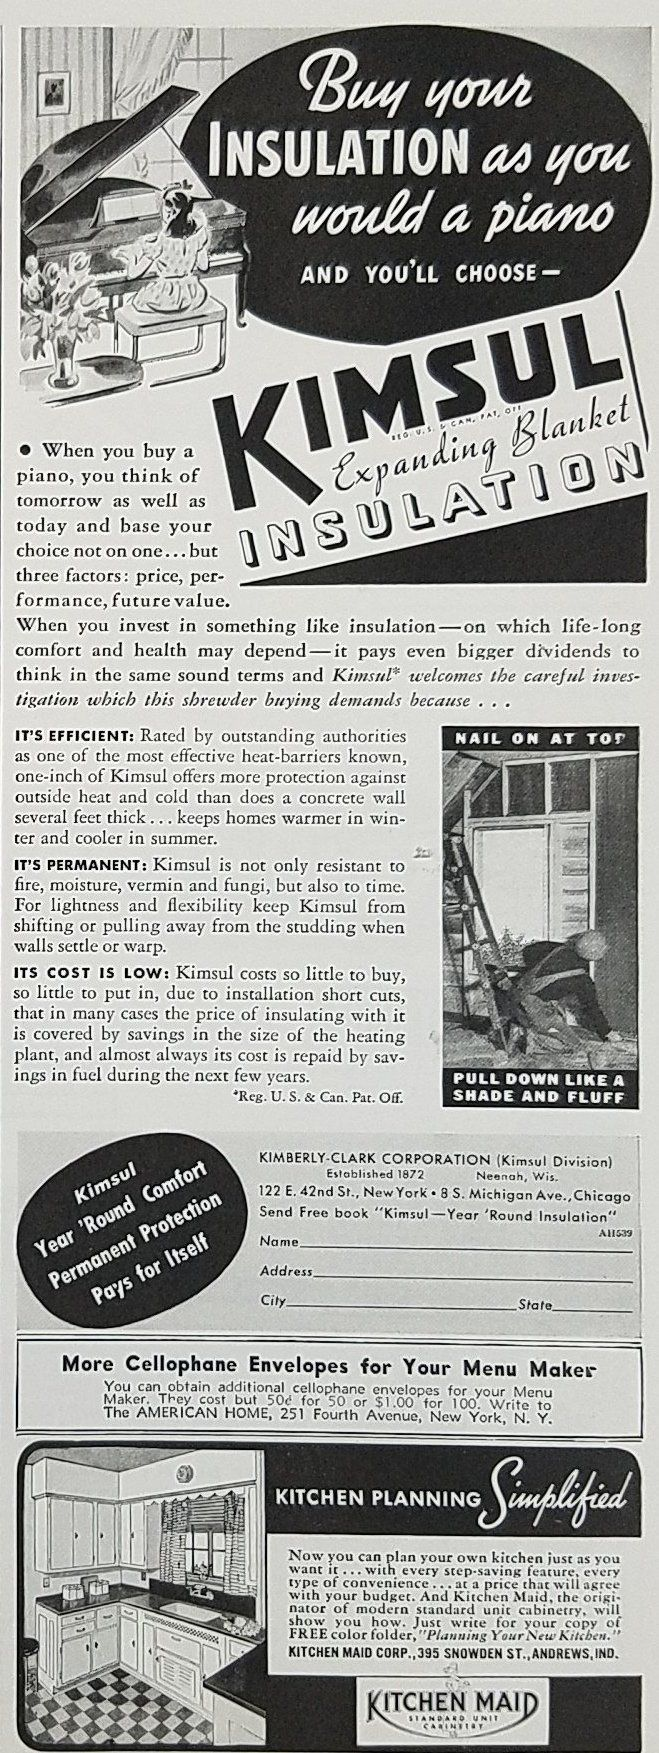 1939 Kimsul Insulation Vintage Ad - Buy As You Would A Piano